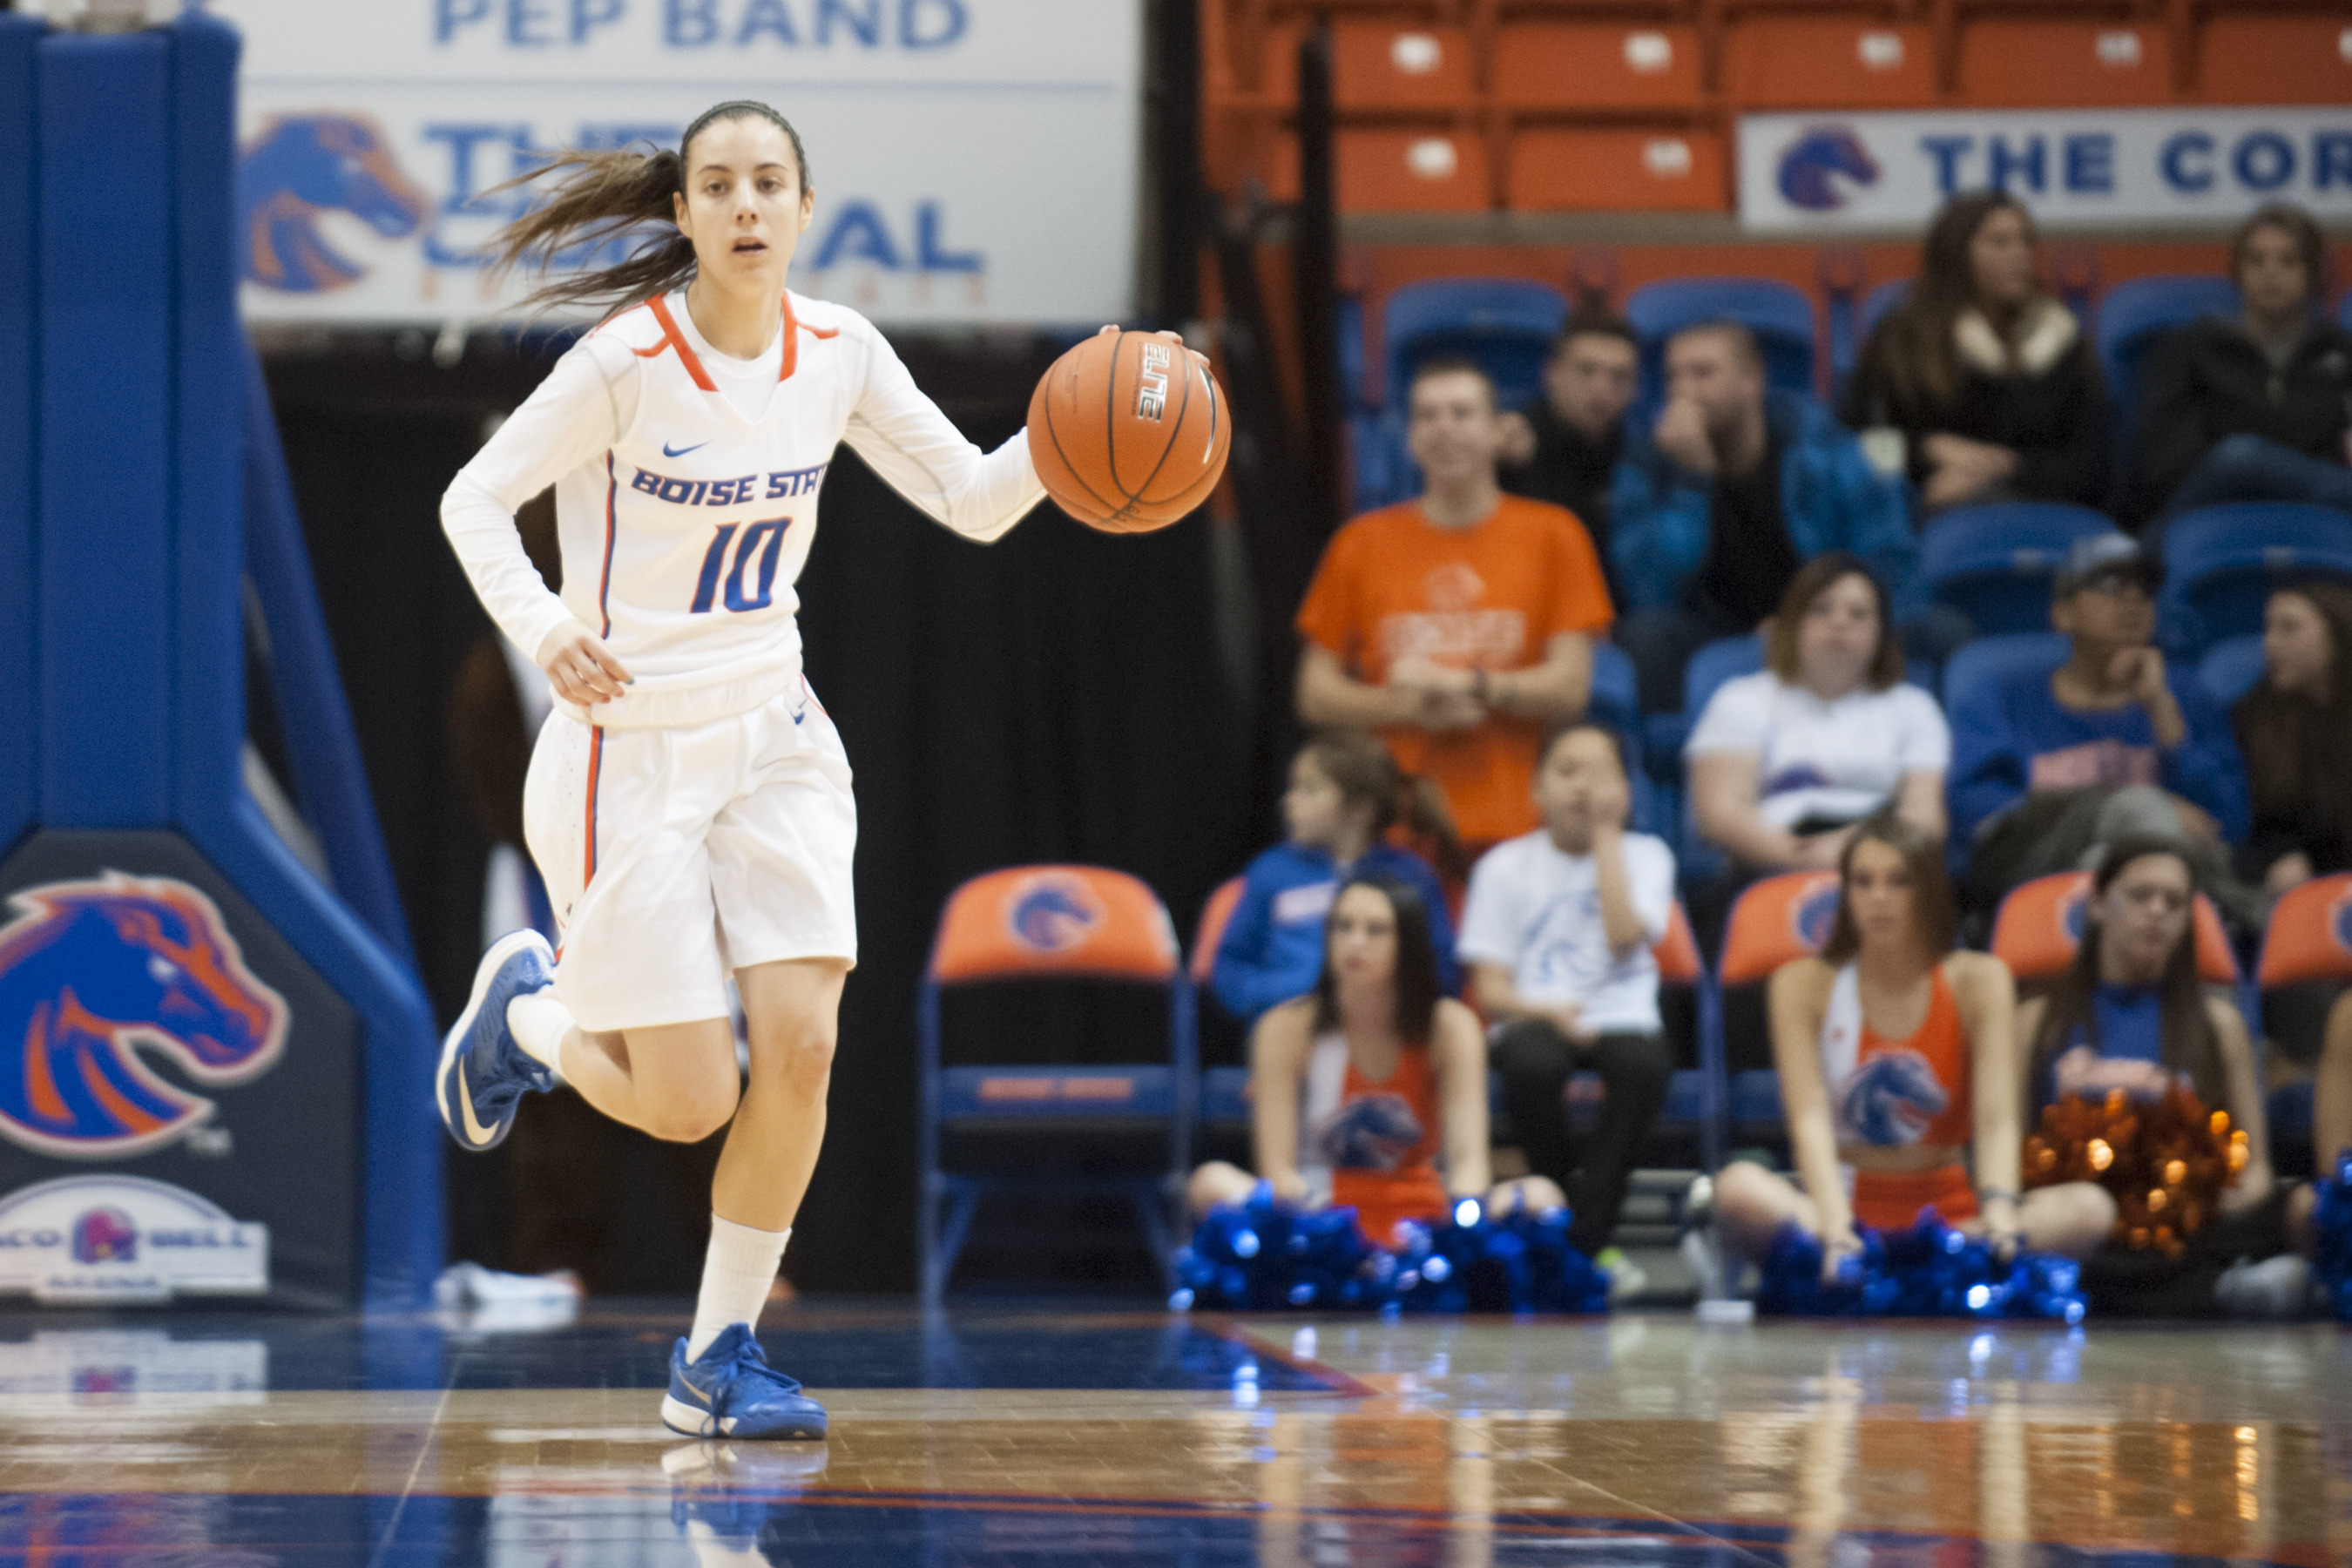 Yaiza Rodriguez Ortego leads the Broncos with 75 assists.